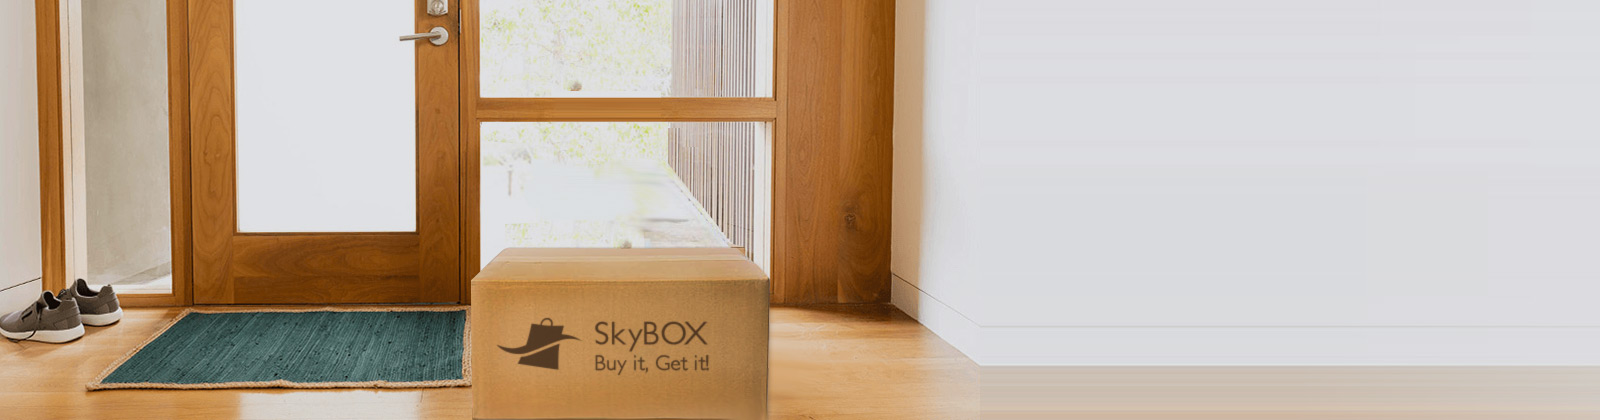 Win SkyBOX Reward points that you can redeem for discounts on your shipments.